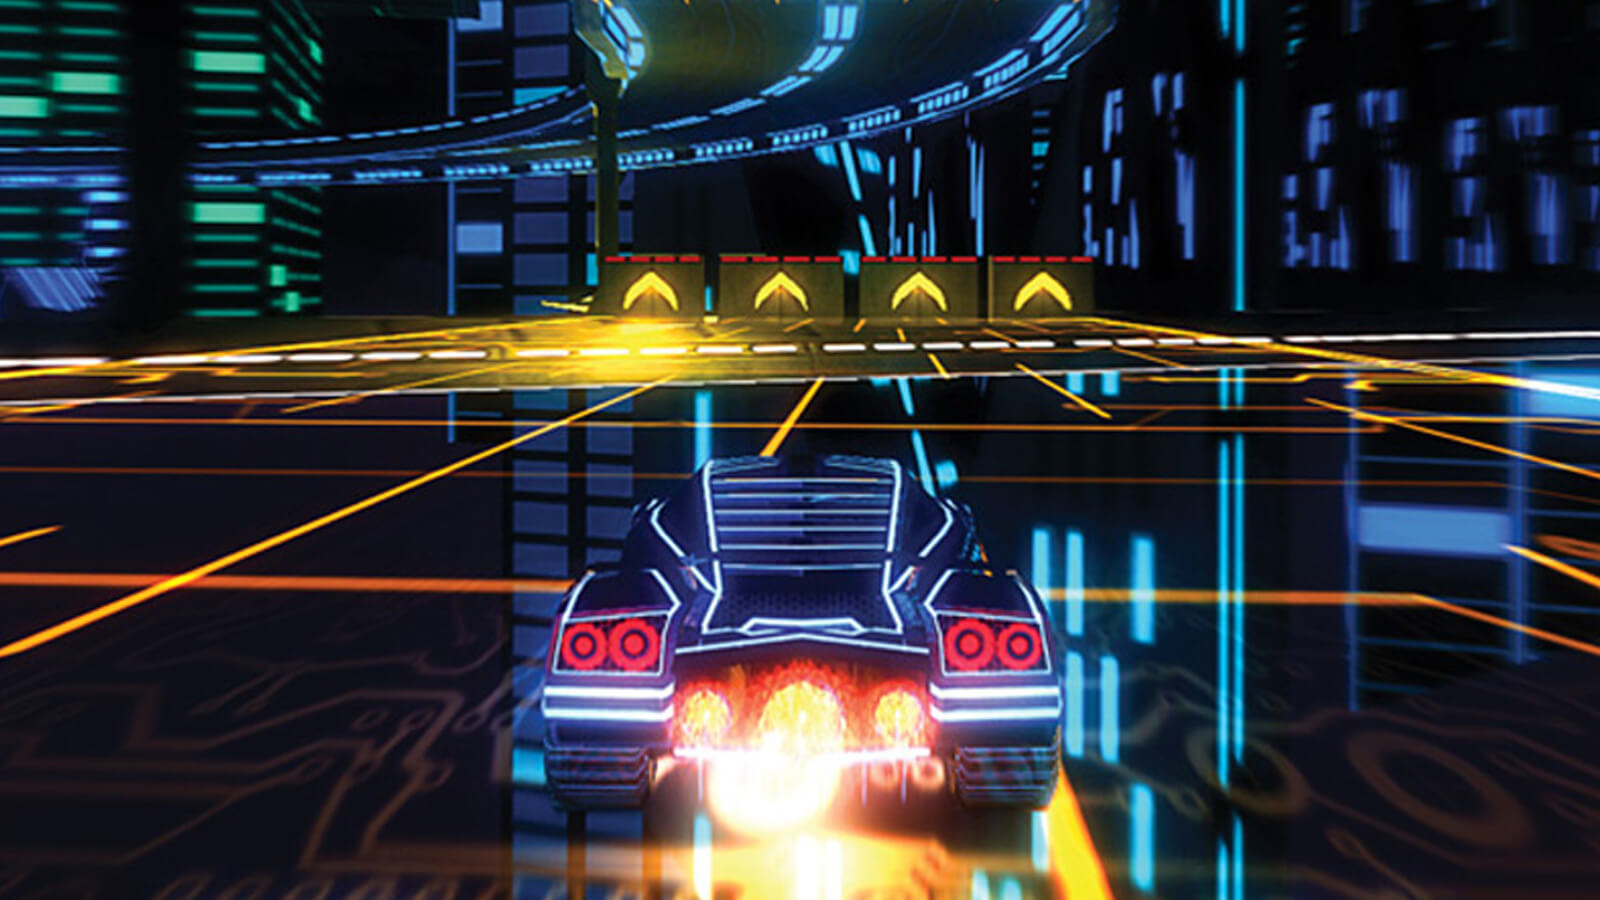 A glowing car with jet-boosters races through a futuristic roadway.